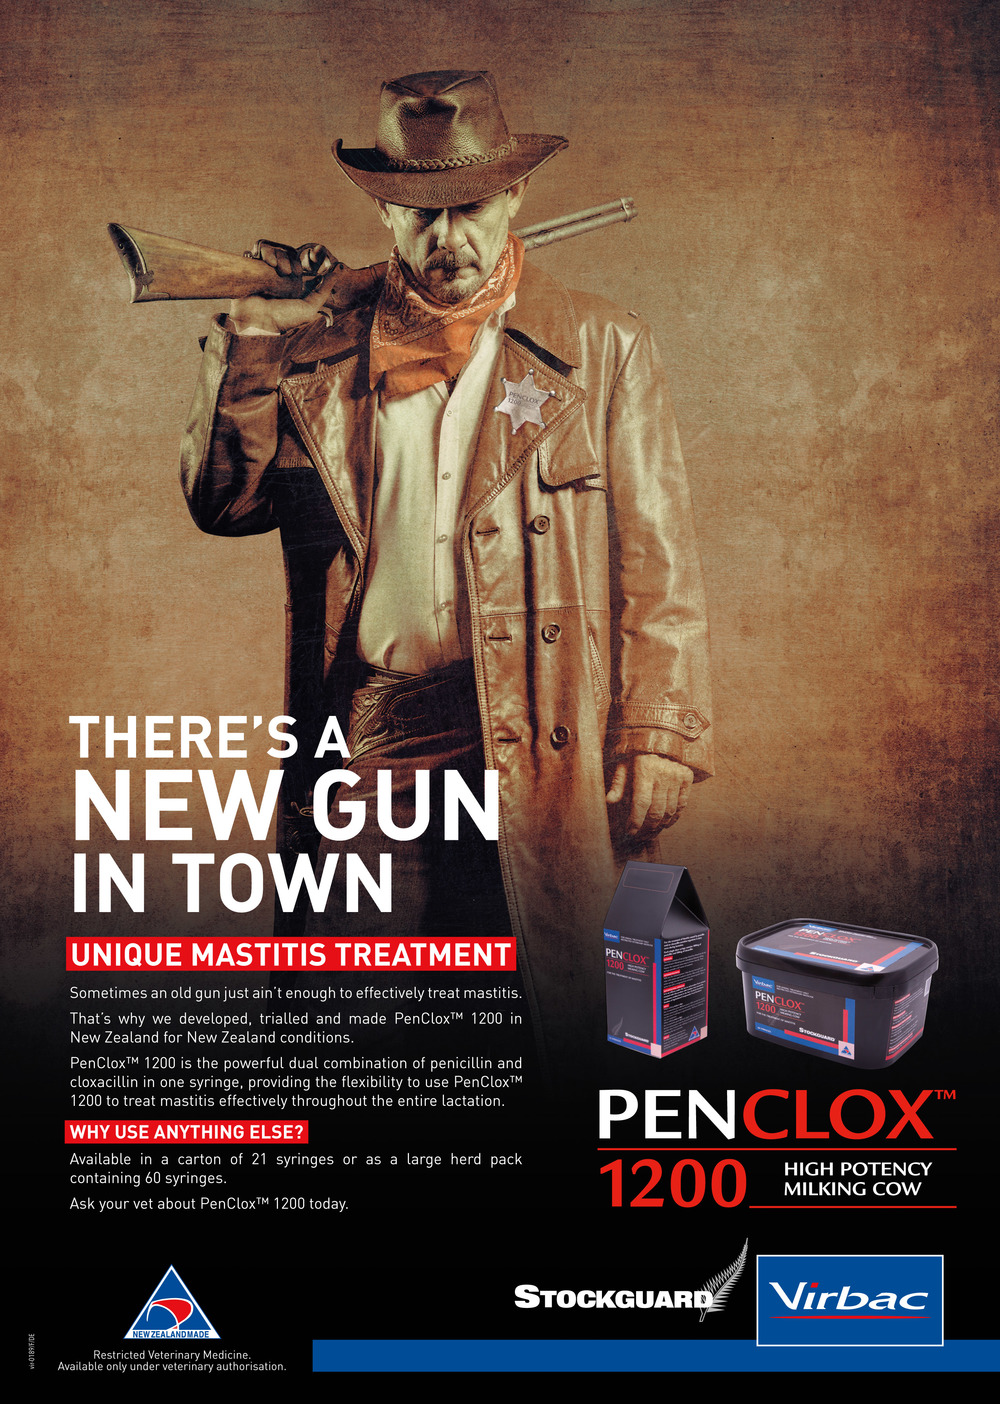 The full page advertisement for PenClox 1200 that appeared in the New Zealand Dairy Exporter. A comprehensive, year long advertising media schedule was planned for Penclox 1200 by  Rainmakers Media.